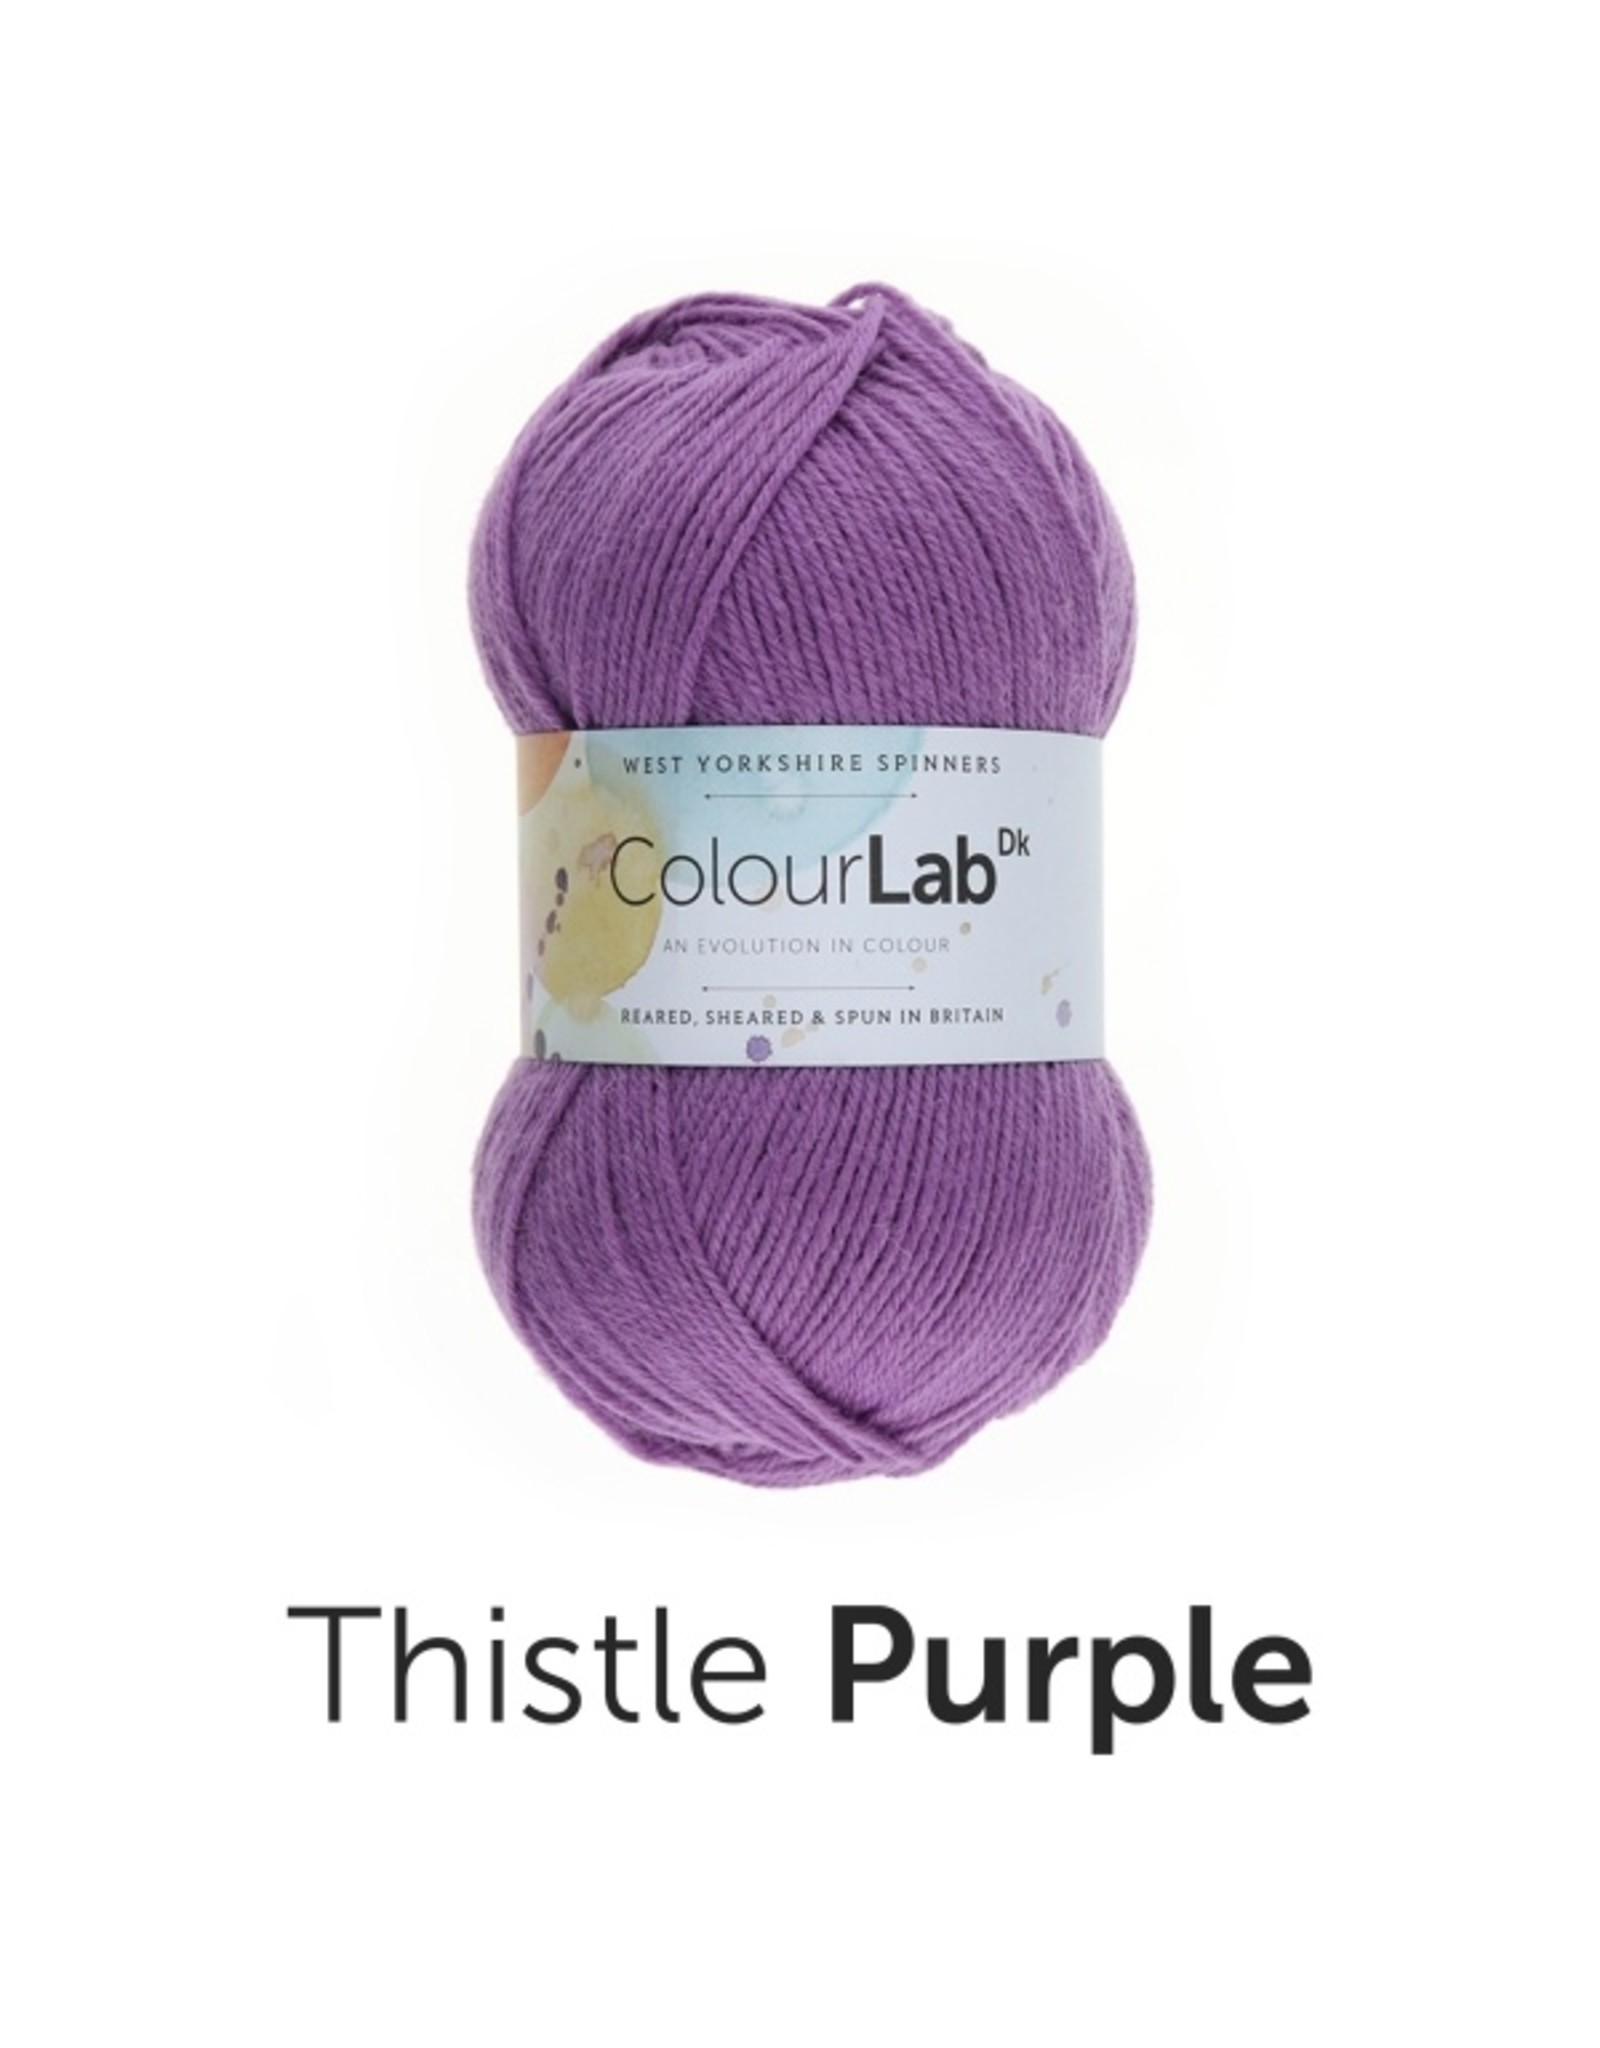 West Yorkshire Spinners WYS ColourLab DK